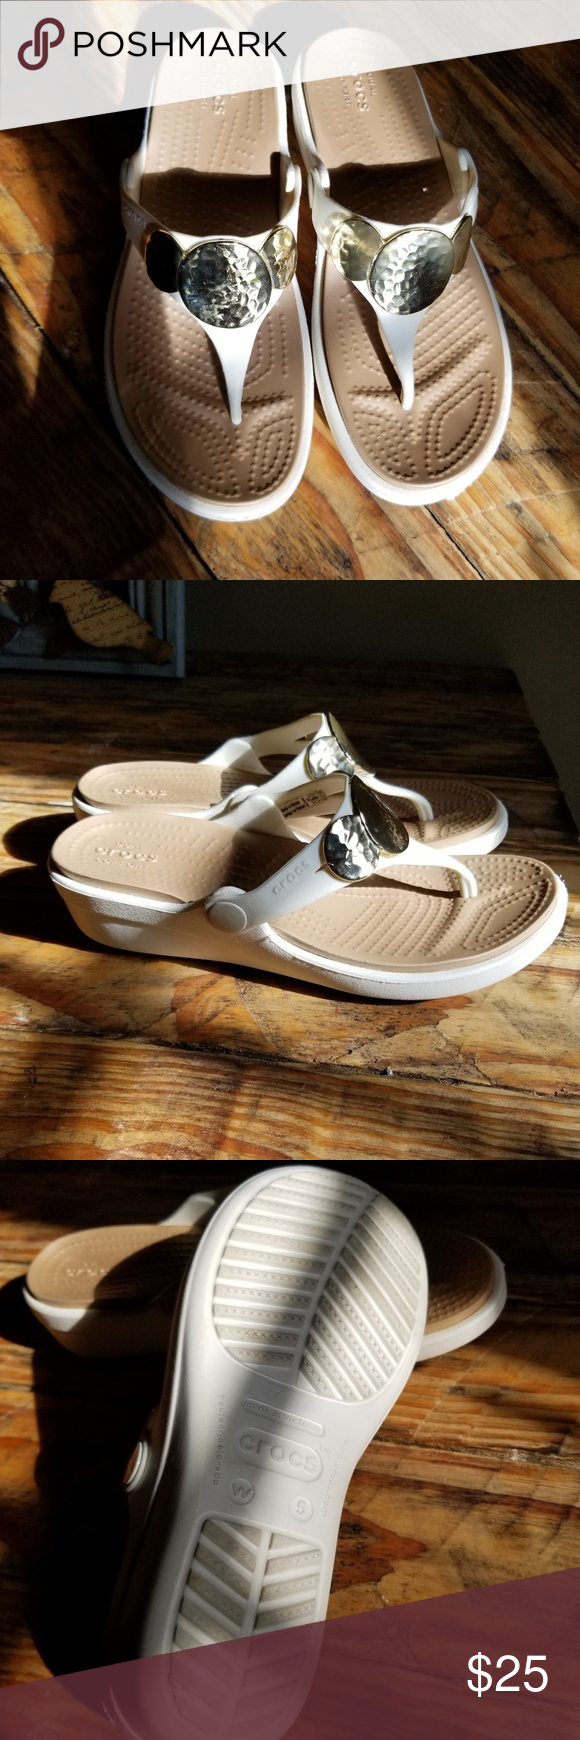 Crocs White Gold Tan Thong Low Wedge Sandal 5 Beautiful like new croc flip flop signals with gold toned embellishment. Heel is 1 high. CROCS Shoes Sandals #lowwedgesandals Crocs White Gold Tan Thong Low Wedge Sandal 5 Beautiful like new croc flip flop signals with gold toned embellishment. Heel is 1 high. CROCS Shoes Sandals #lowwedgesandals Crocs White Gold Tan Thong Low Wedge Sandal 5 Beautiful like new croc flip flop signals with gold toned embellishment. Heel is 1 high. CROCS Shoes Sandals #lowwedgesandals